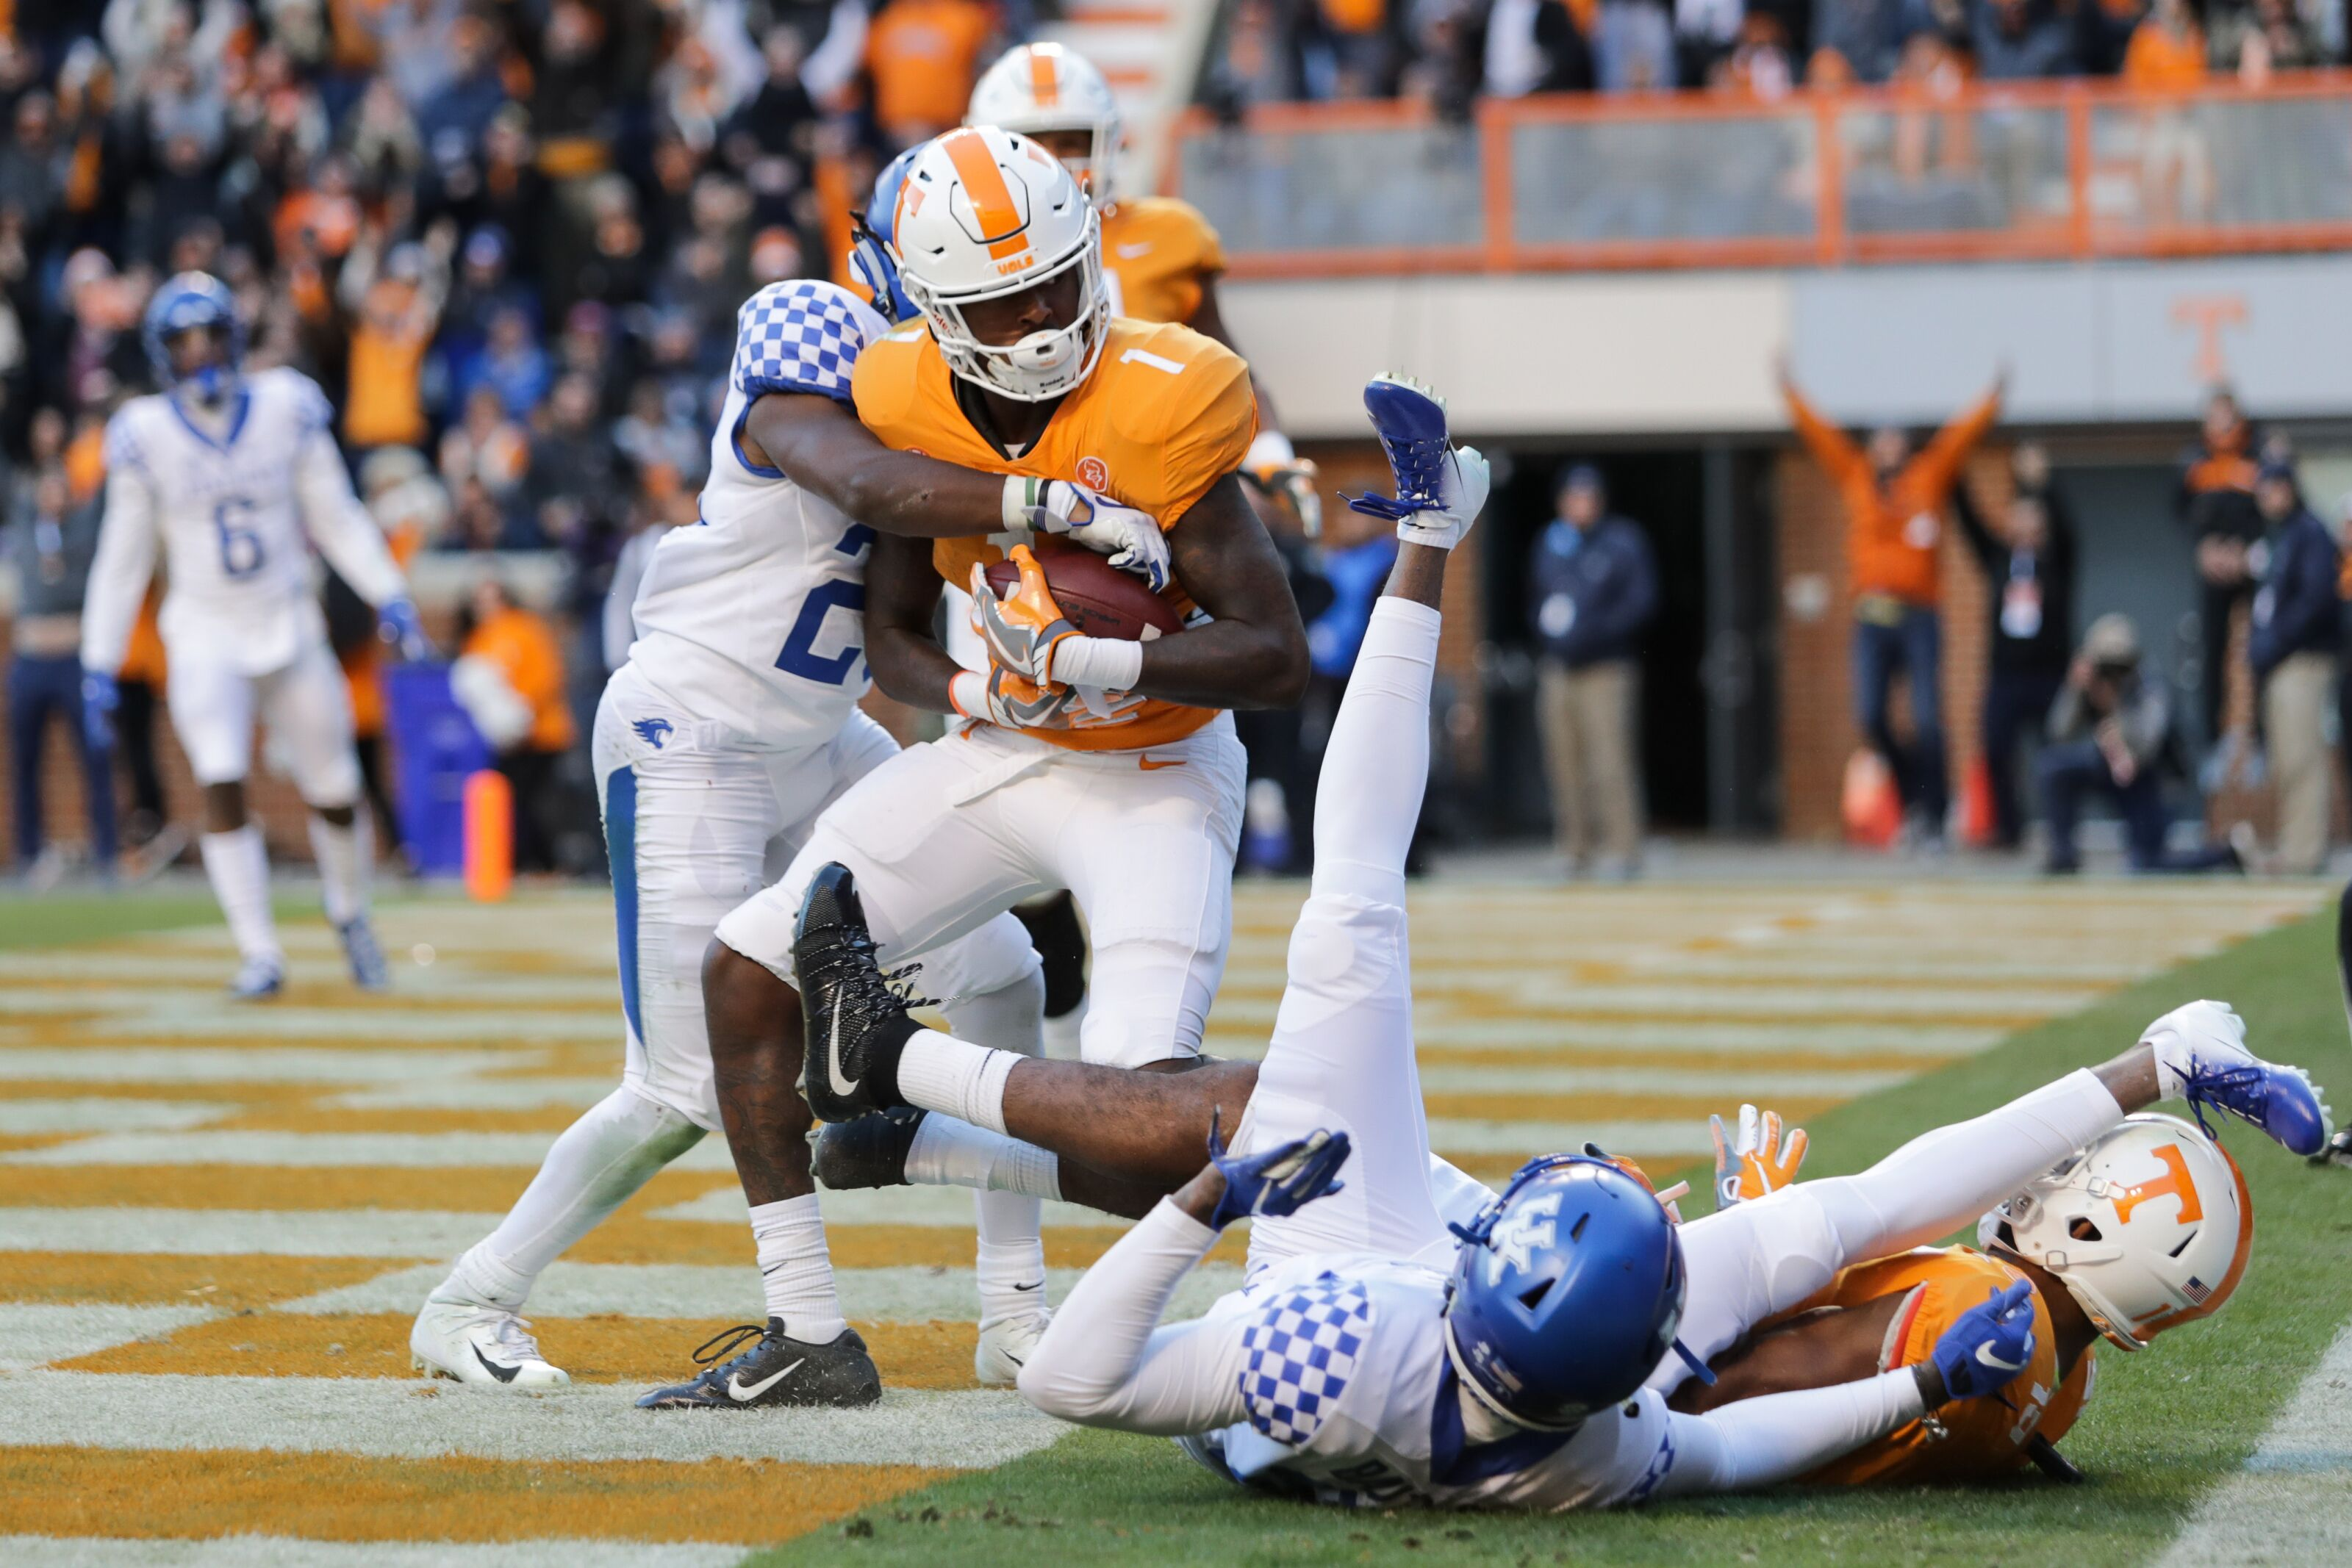 Uk Basketball: Tennessee Football: Vols Upset Kentucky Wildcats SCORE